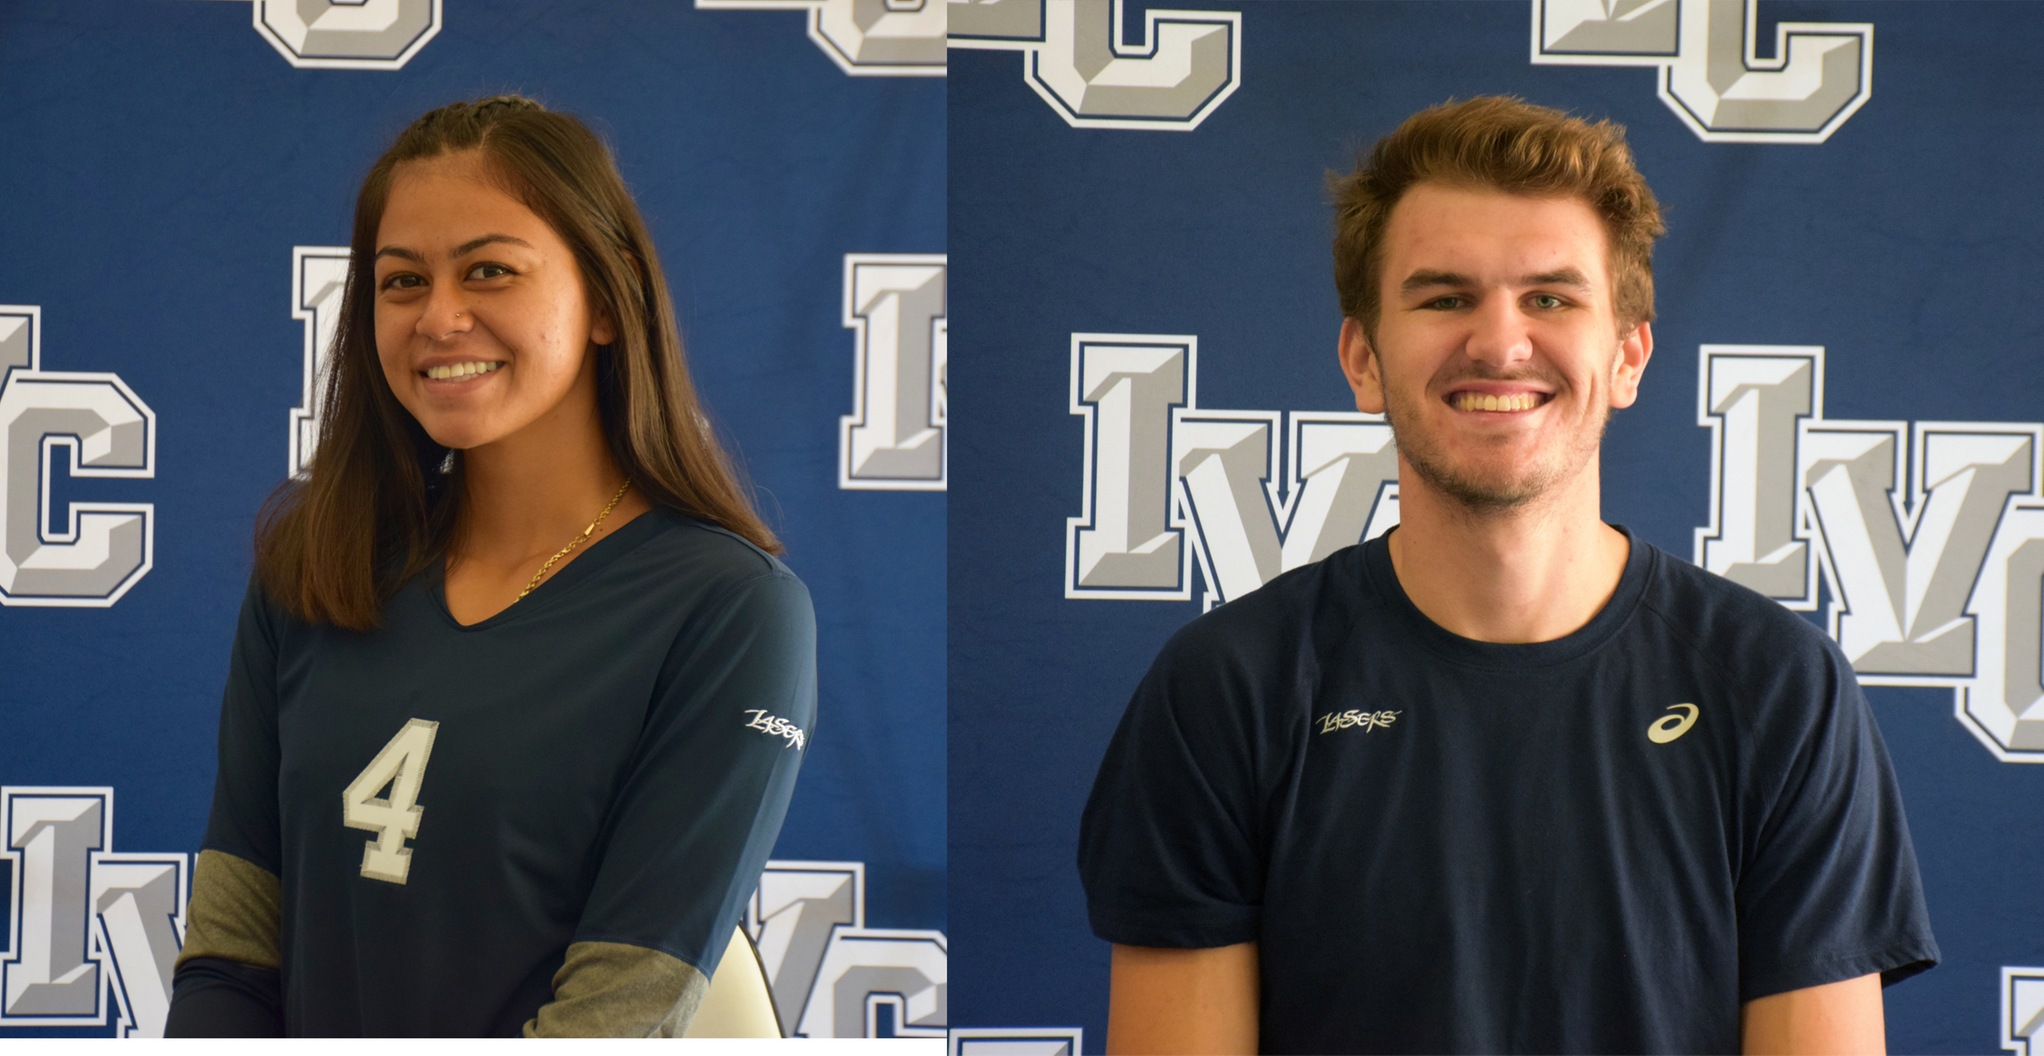 Ka'awaloa and August named Irvine Valley's athletes of the year